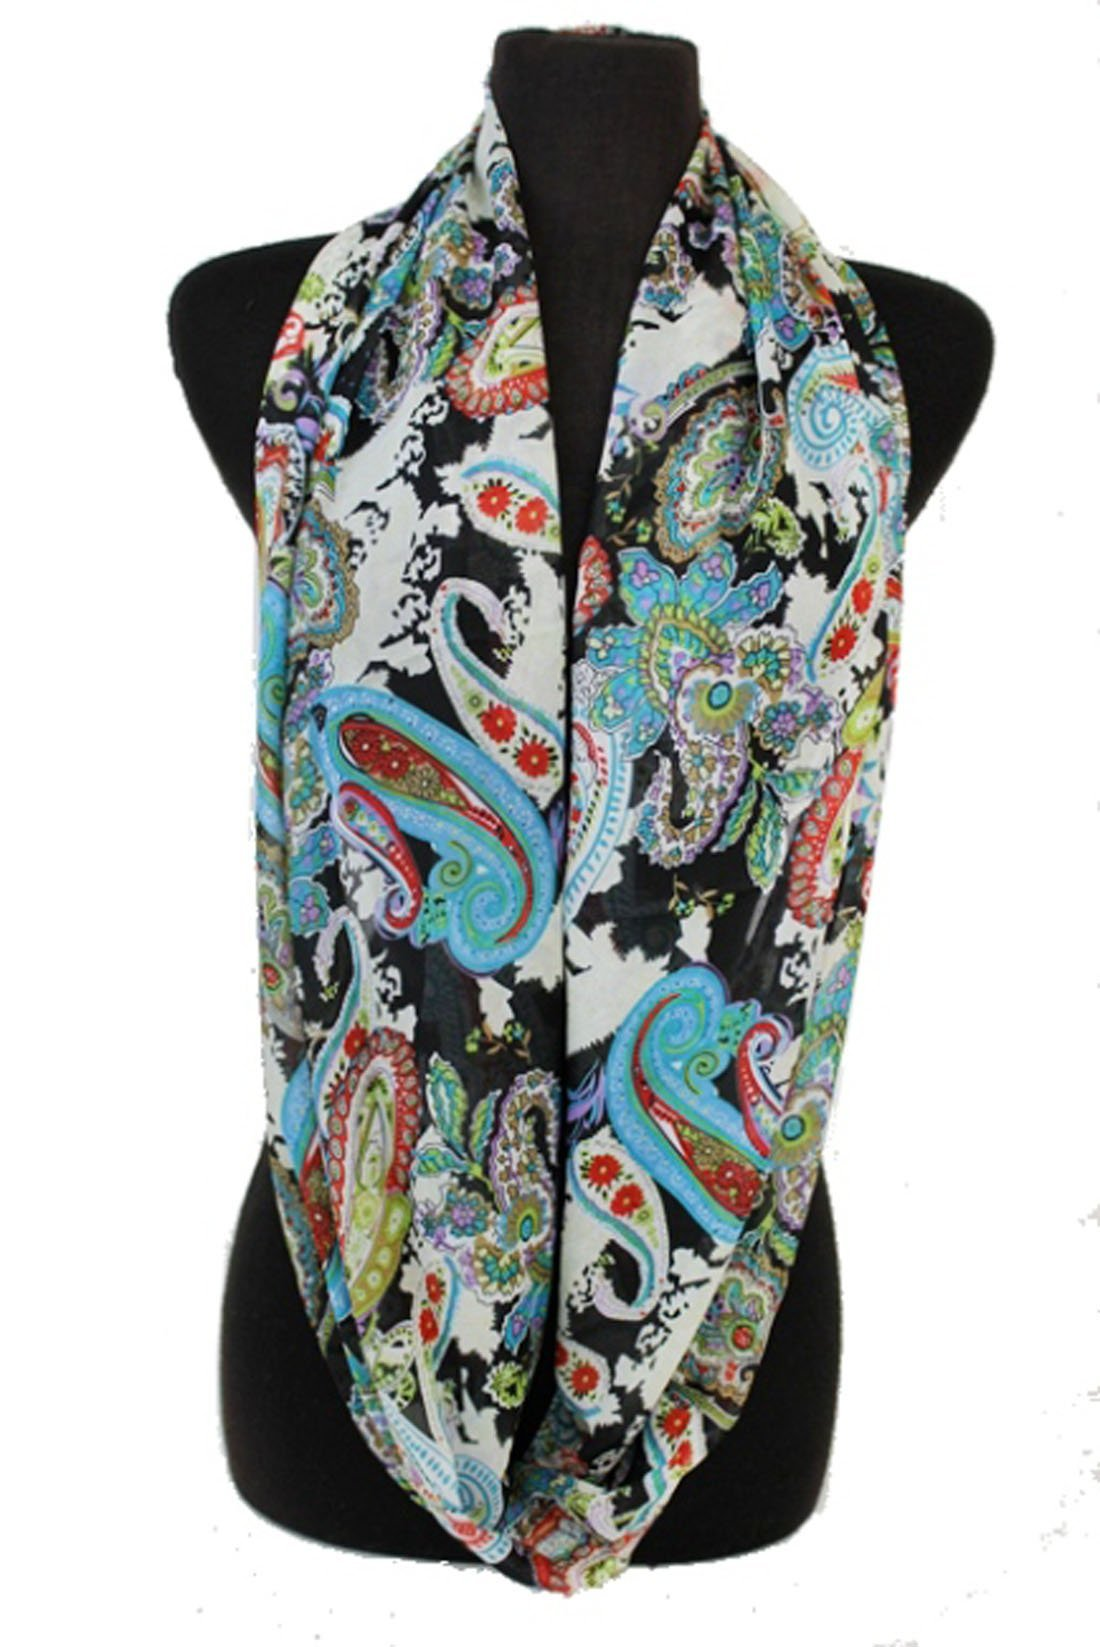 Simply Savvy Co USA Based - Designer Breathable Sheer Nursing Cover Converts Into Stylish Scarf